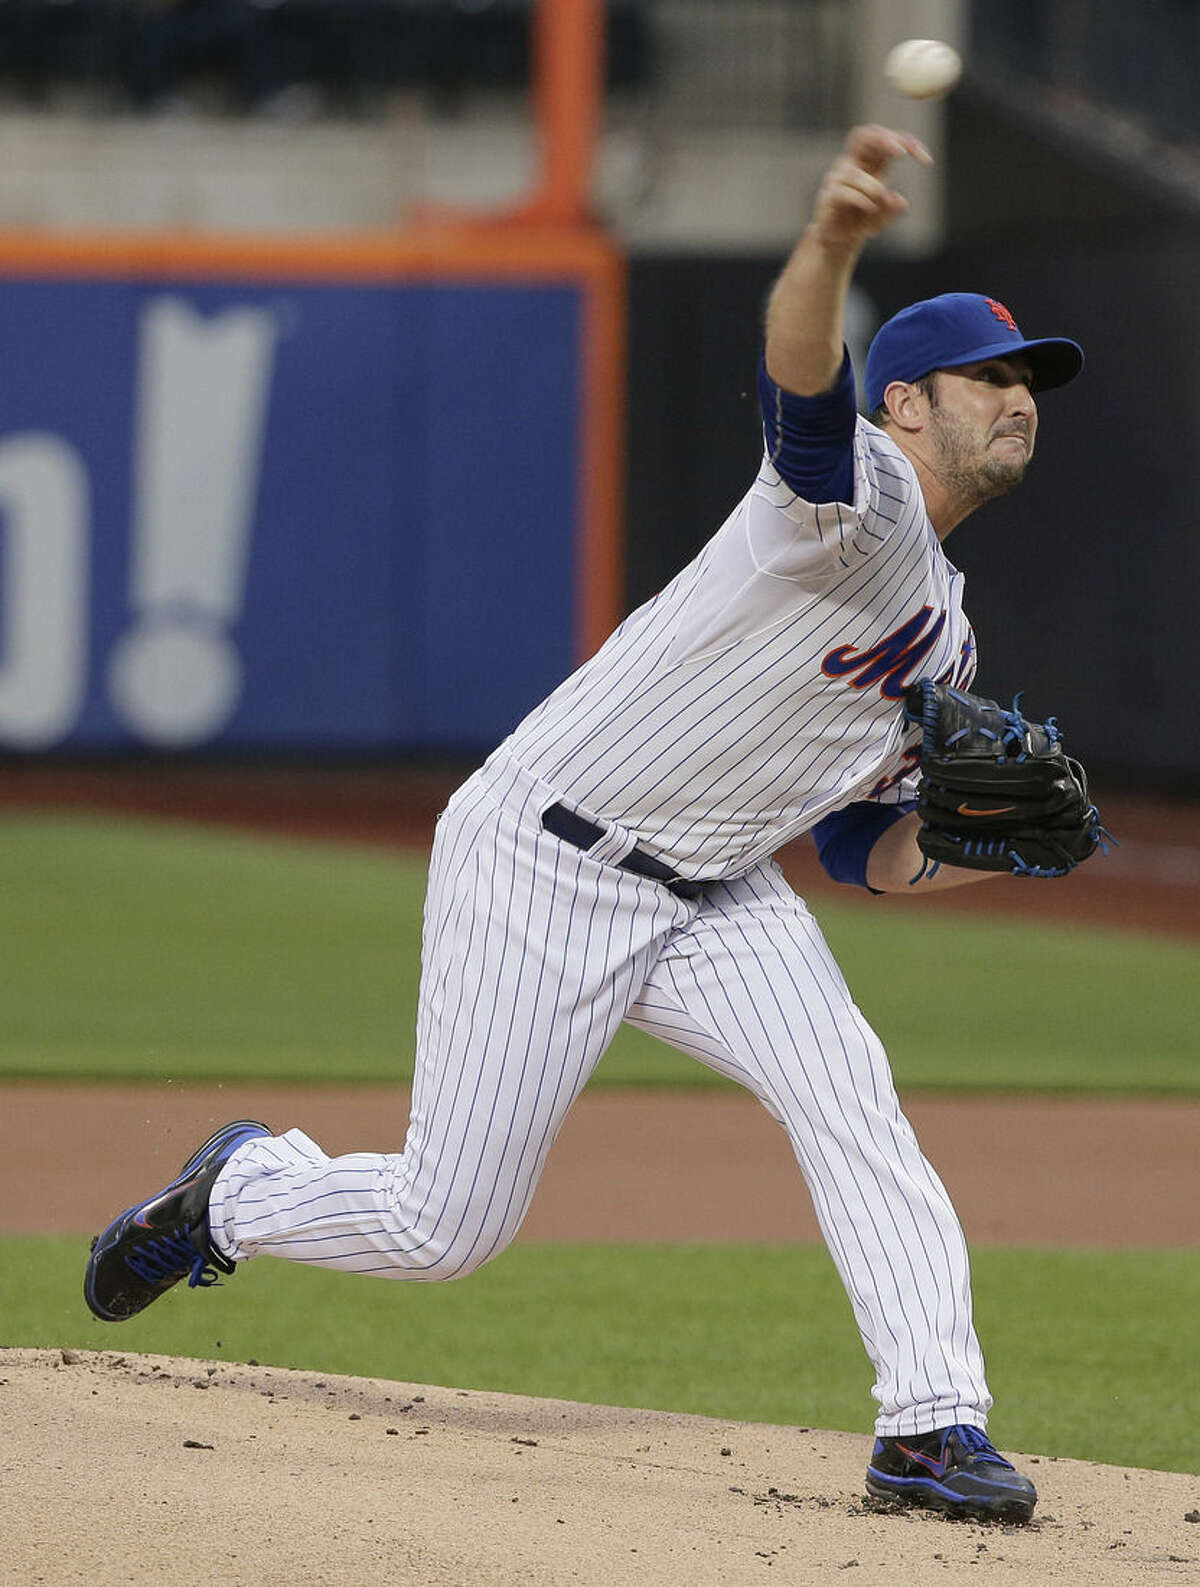 New York Mets pitcher Matt Harvey delivers to the Colorado Rockies during the first inning of a baseball game, Tuesday, Aug. 11, 2015, in New York. (AP Photo/Julie Jacobson)